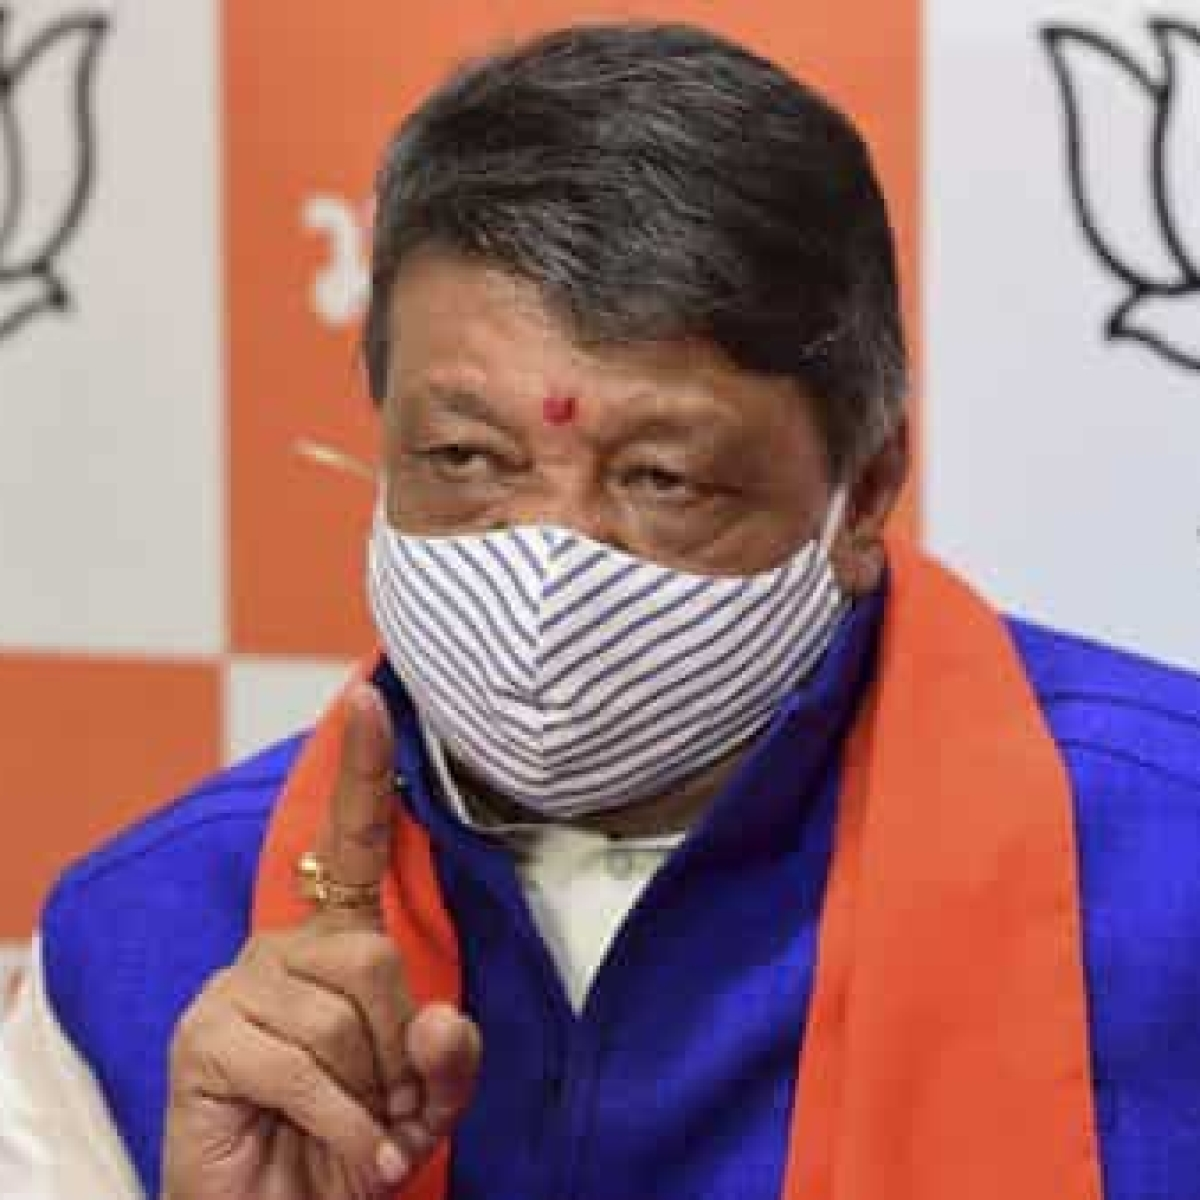 BJP will win all 30 seats in phase 2 of West Bengal polls as well: Kailash Vijayvargiya